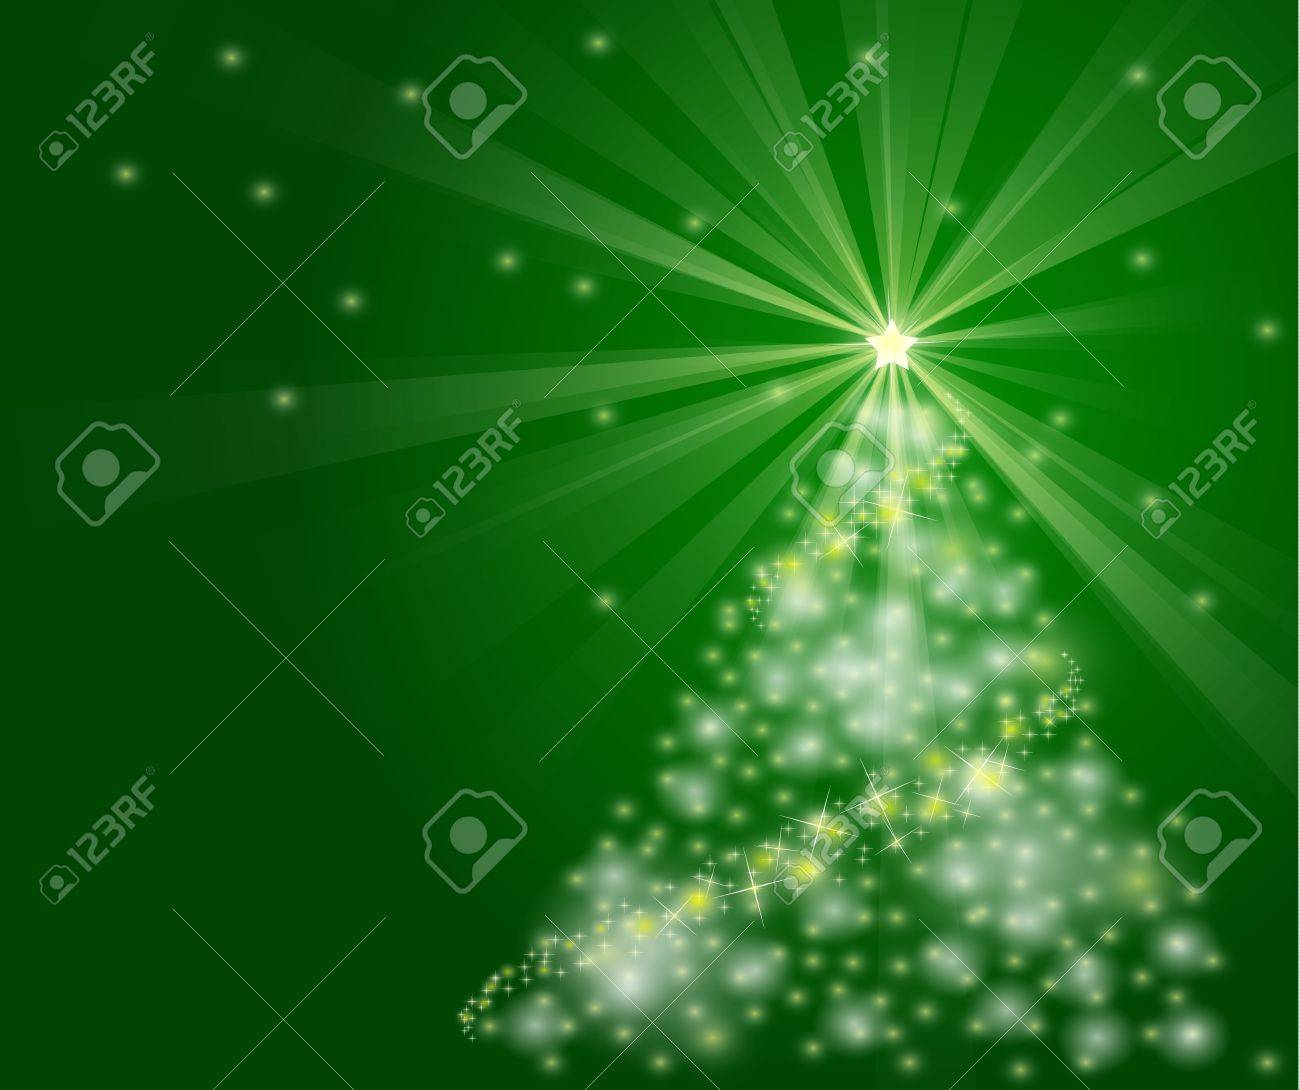 well detailed christmas tree illustration with bright, sparkly lights. EPS version 8 gradients and opacity used. Stock Vector - 11193556